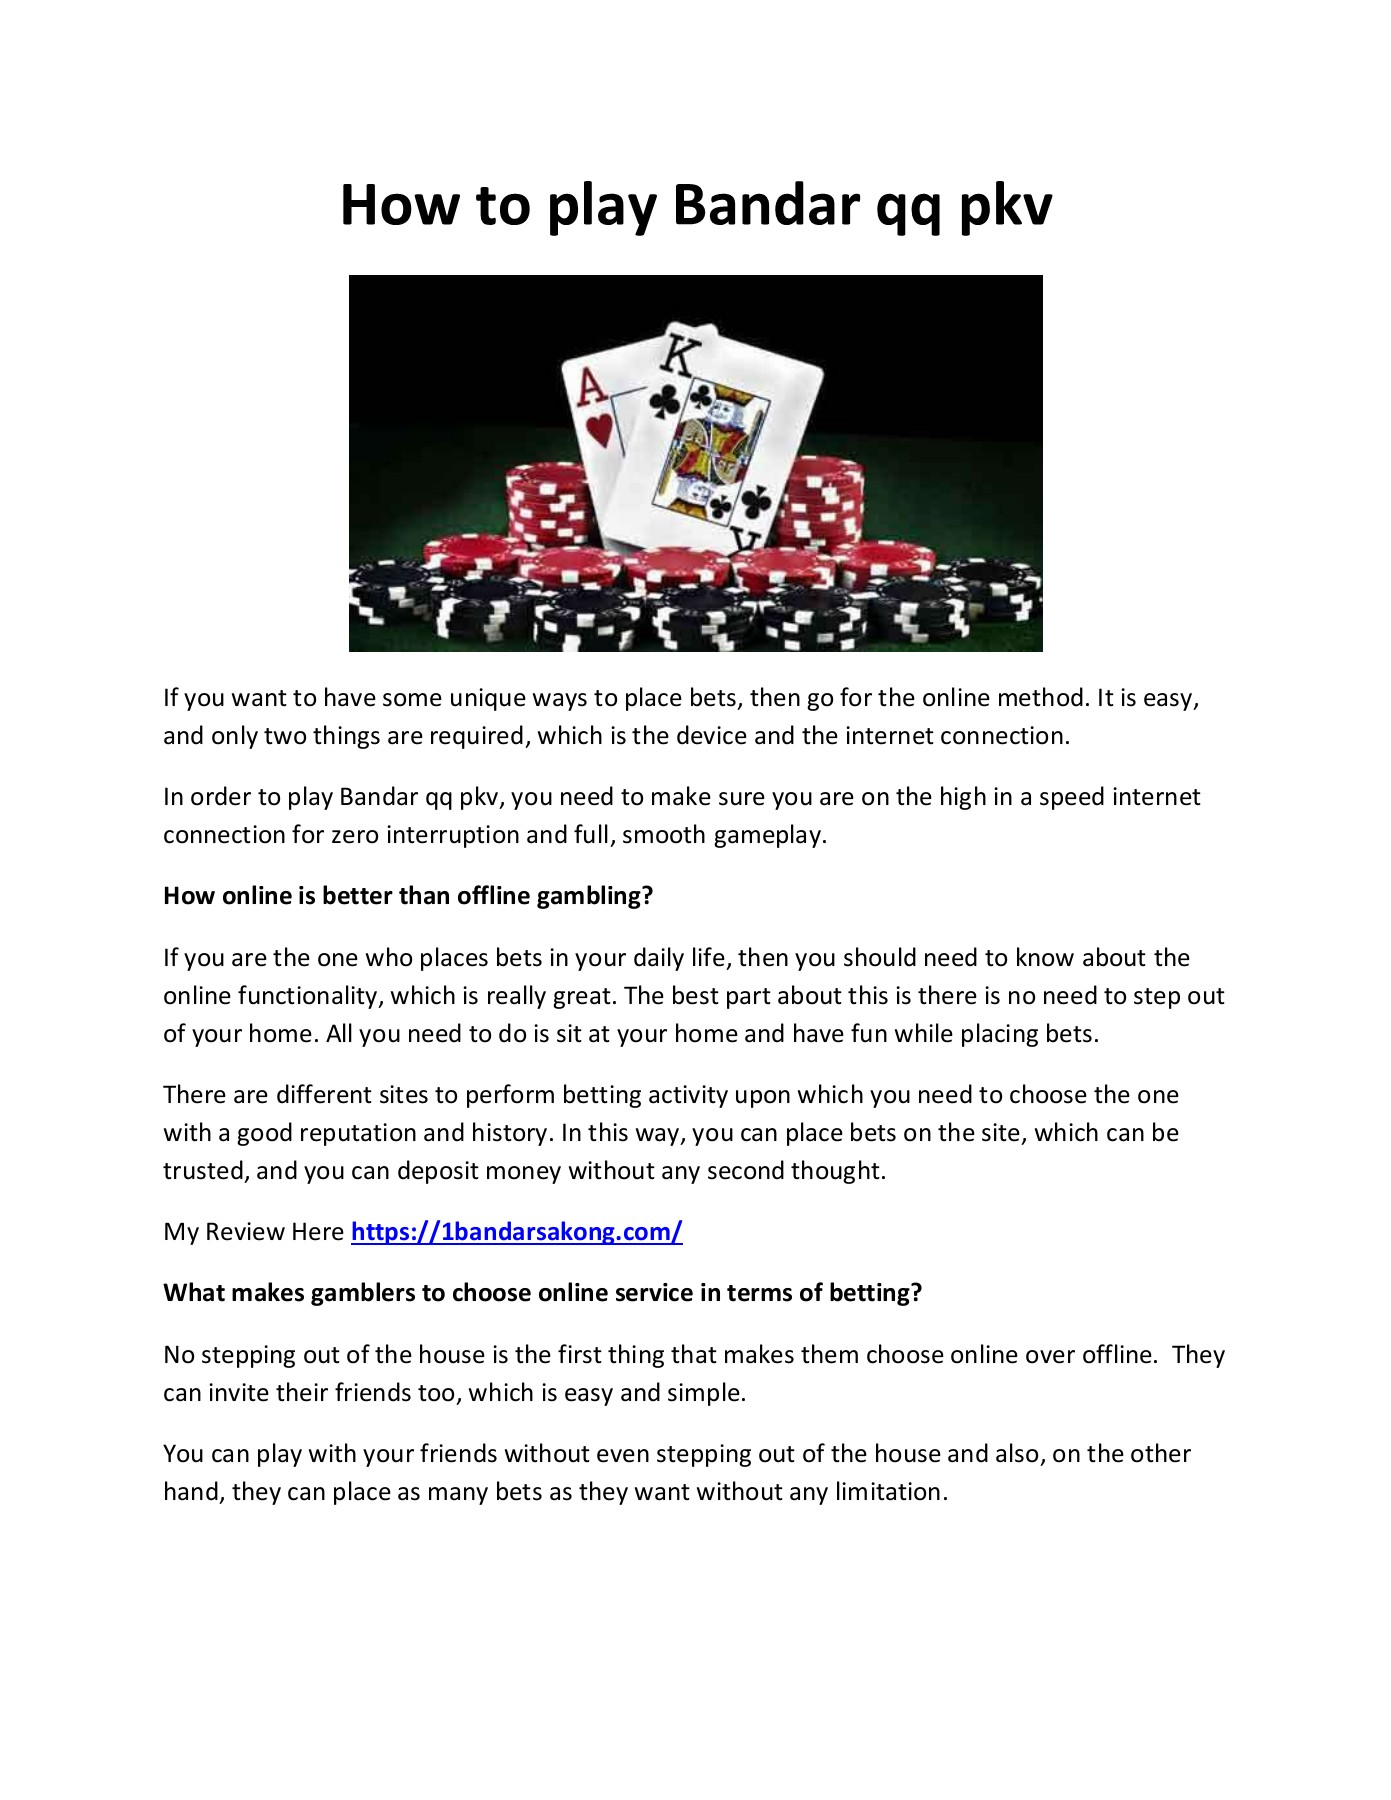 How To Play Bandar Qq Pkv Flip Book Pages 1 2 Pubhtml5